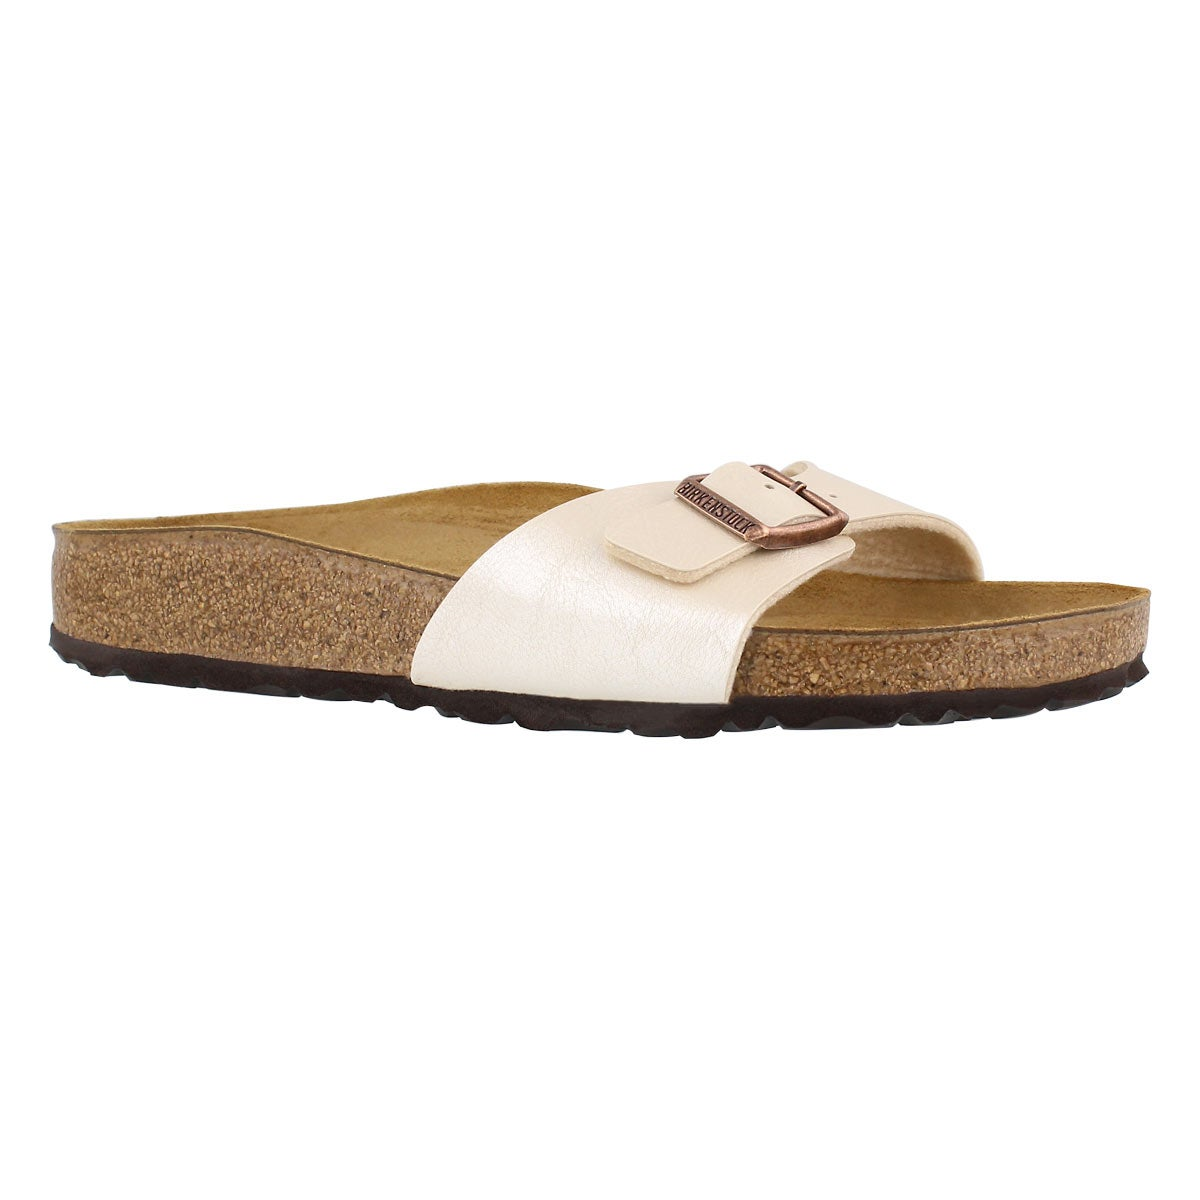 Lds Madrid white pearl BF sandal